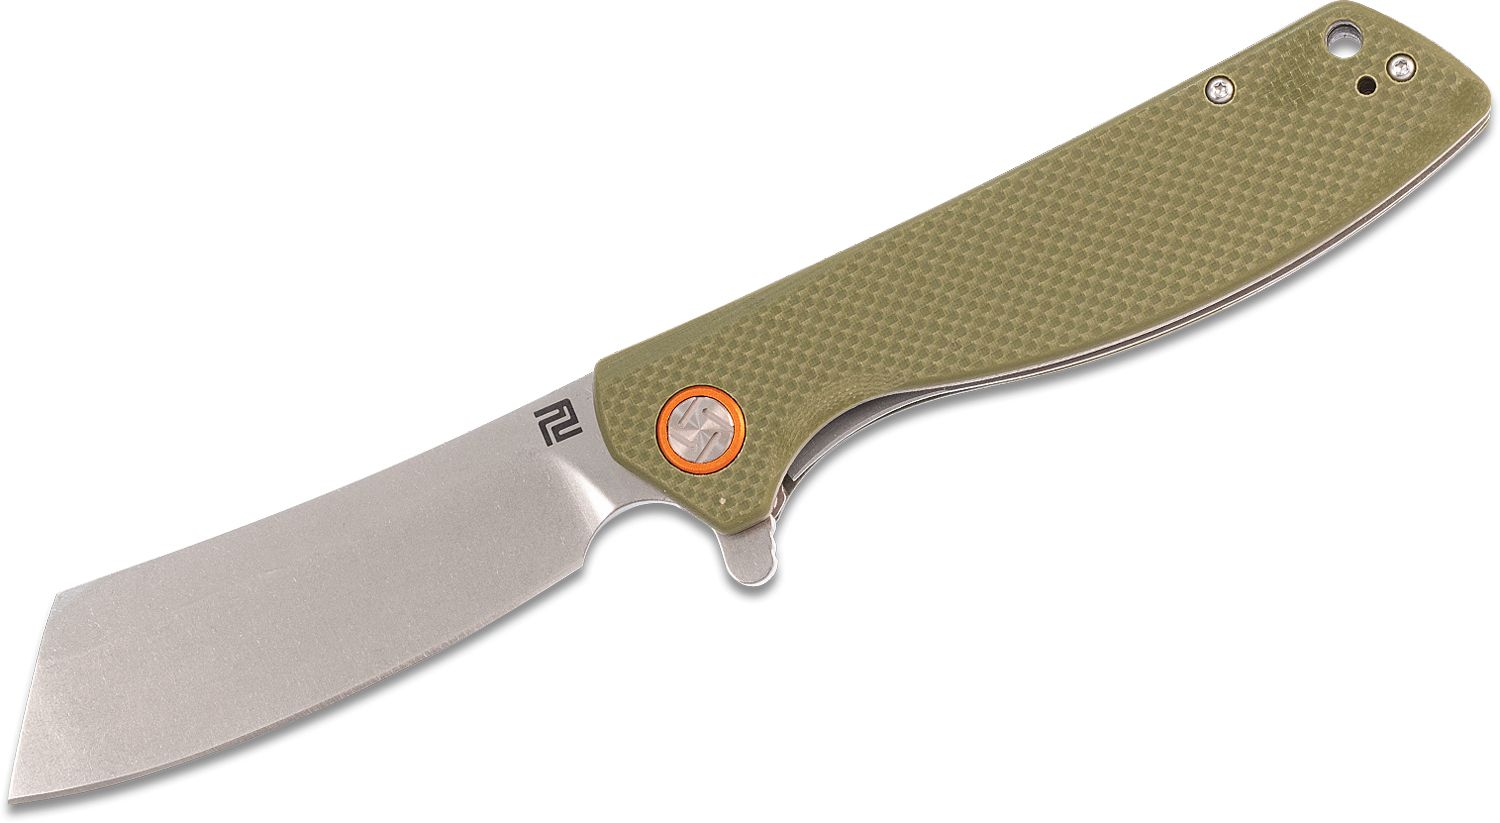 ArtisanCutlery Tomahawk 1815P-GNF Flipper Knife 3.94 inch Stonewashed D2 Cleaver-Style Blade, Textured Green G10 Handles